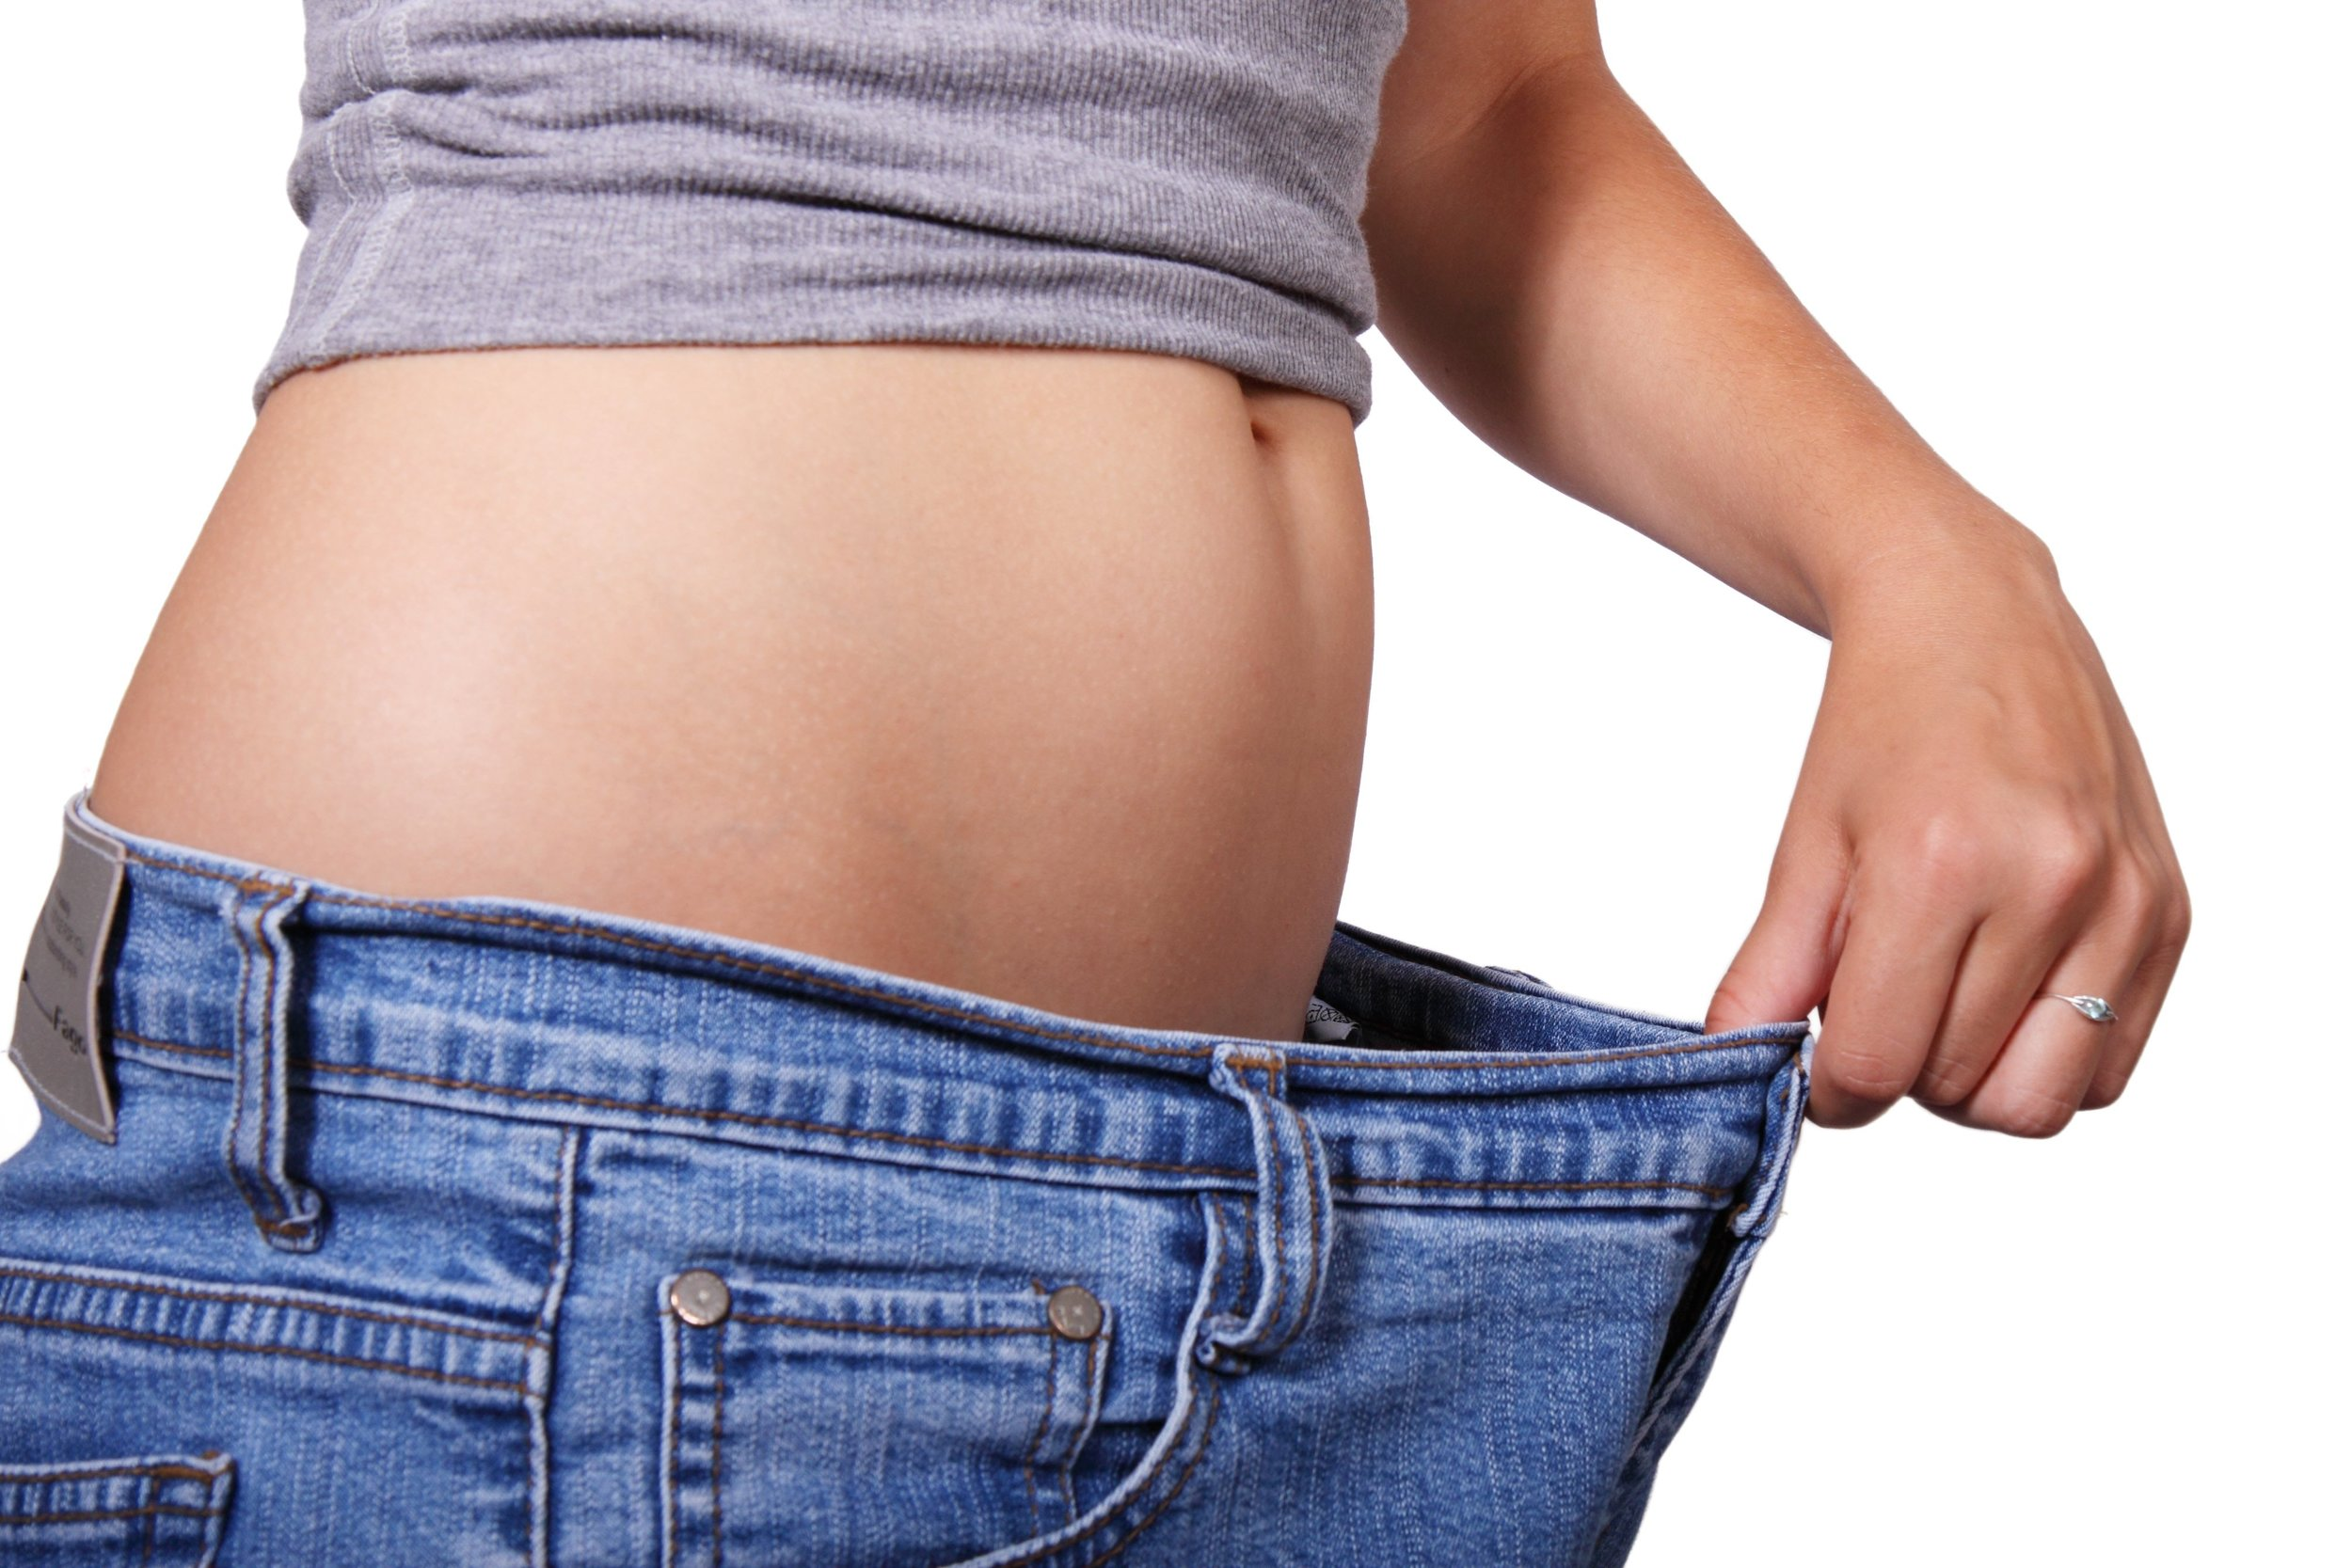 Medical Weight Loss - MD Supervised and Directed